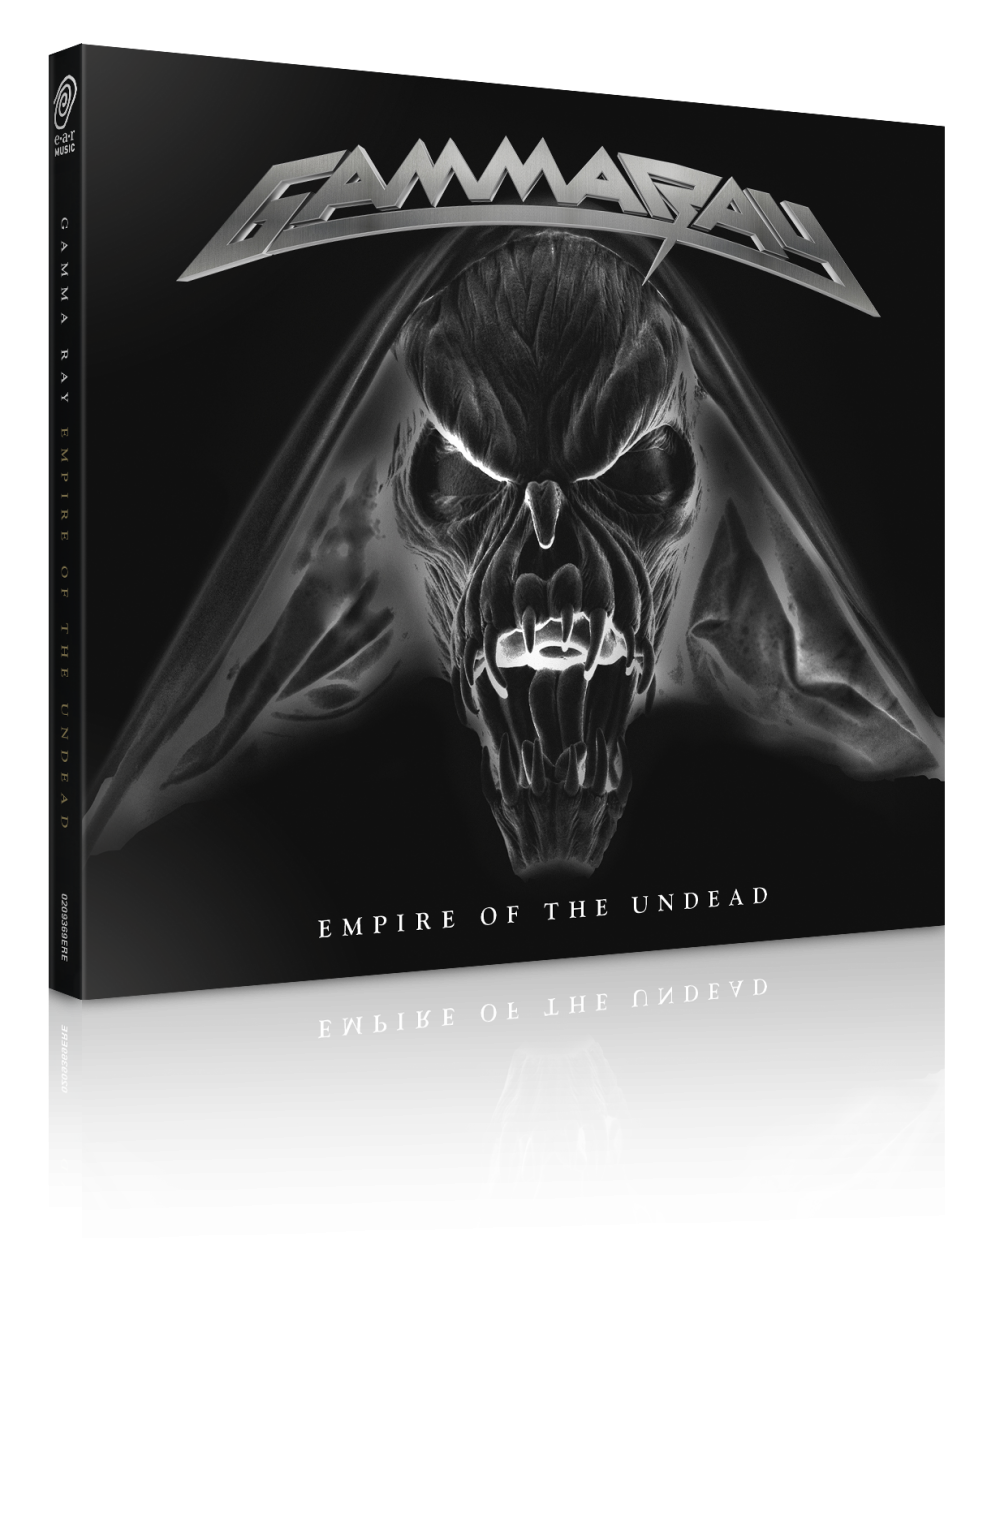 Buy Online Gamma Ray - Empire Of The Undead CD